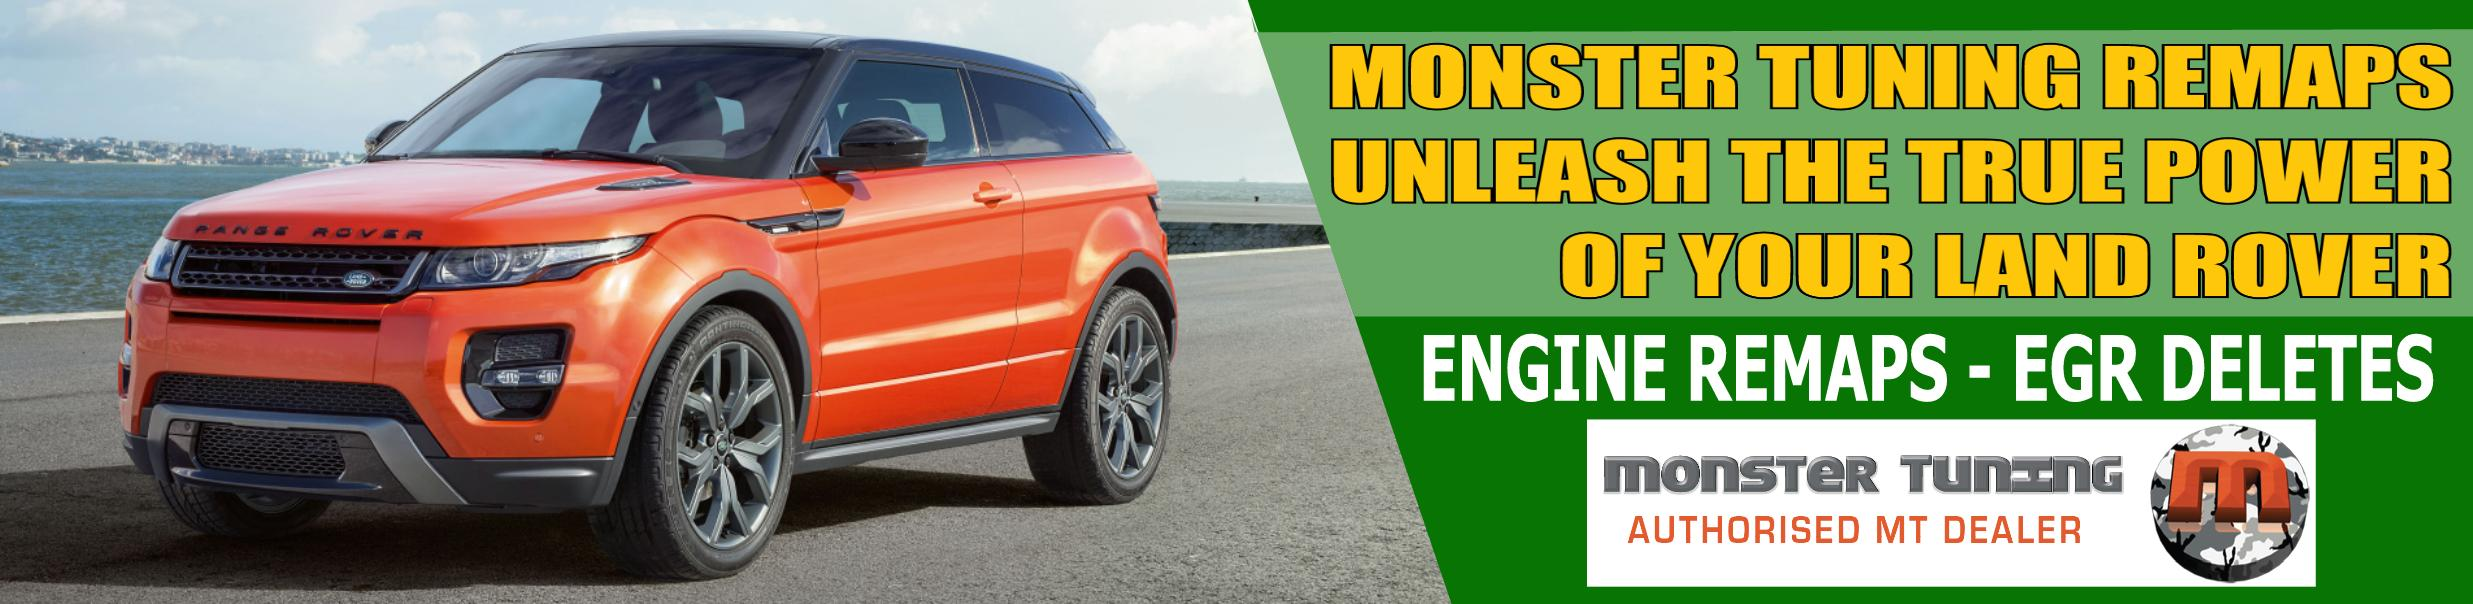 Monster Tuning Engine Remaps and EGR Deletes